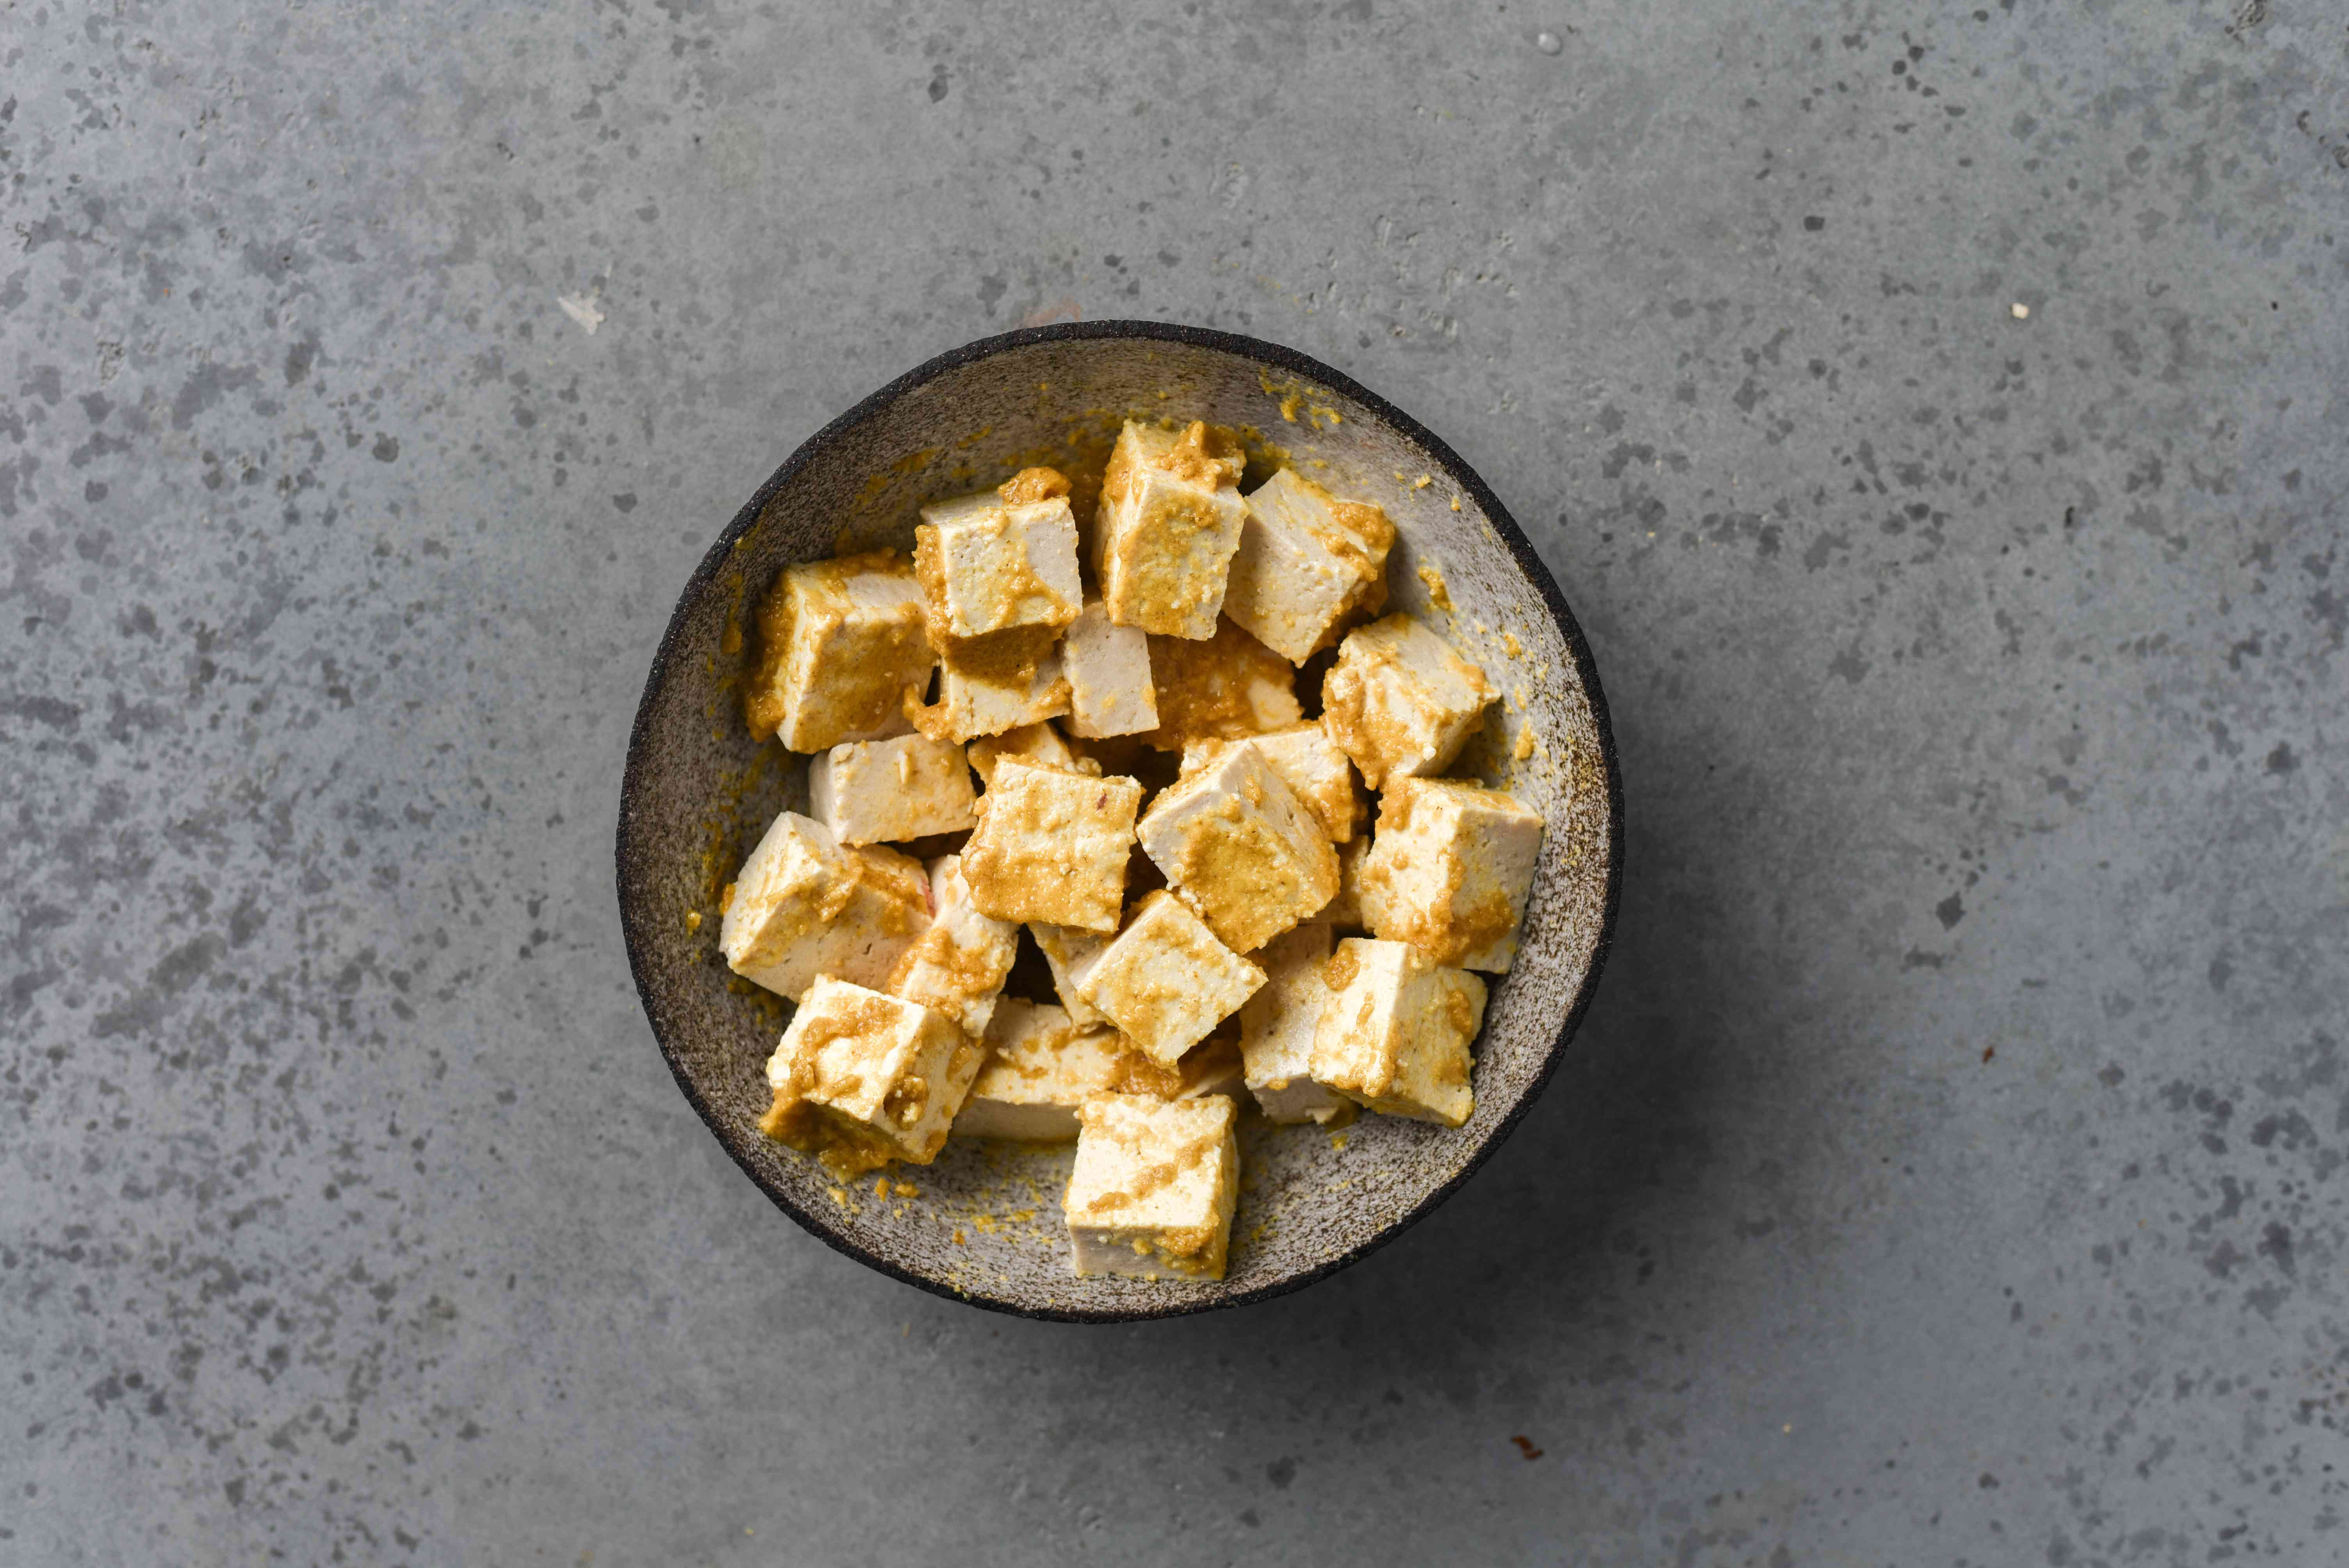 tofu and sauce in a bowl